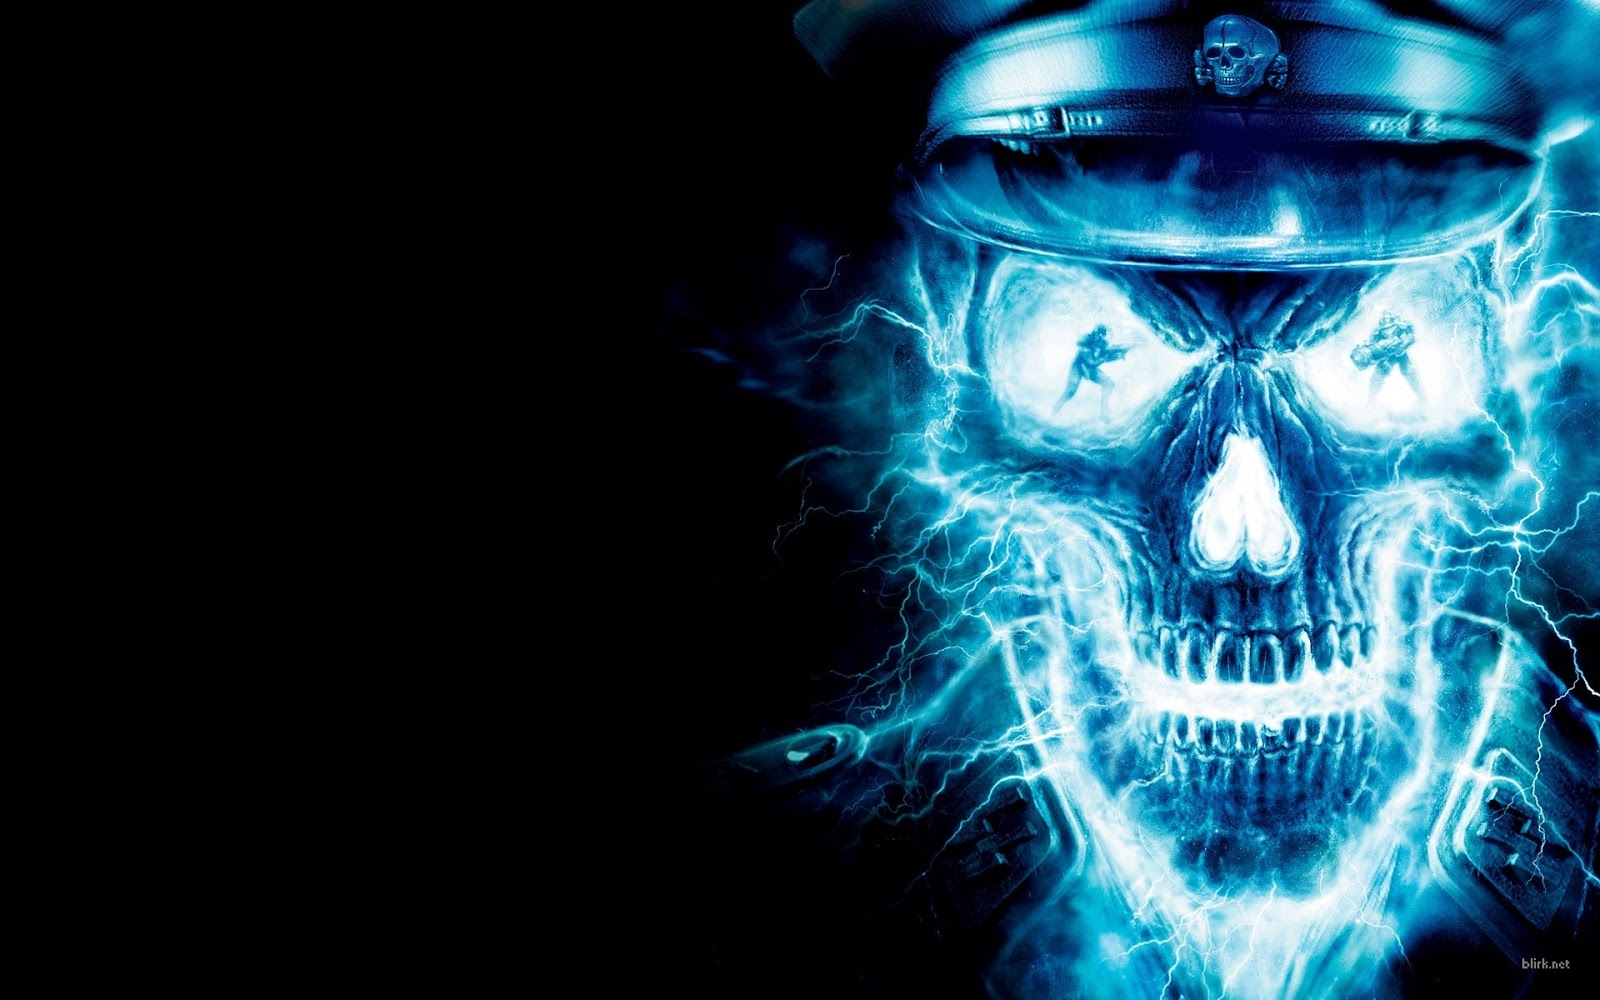 Neon Blue Skull - HD Wallpaper